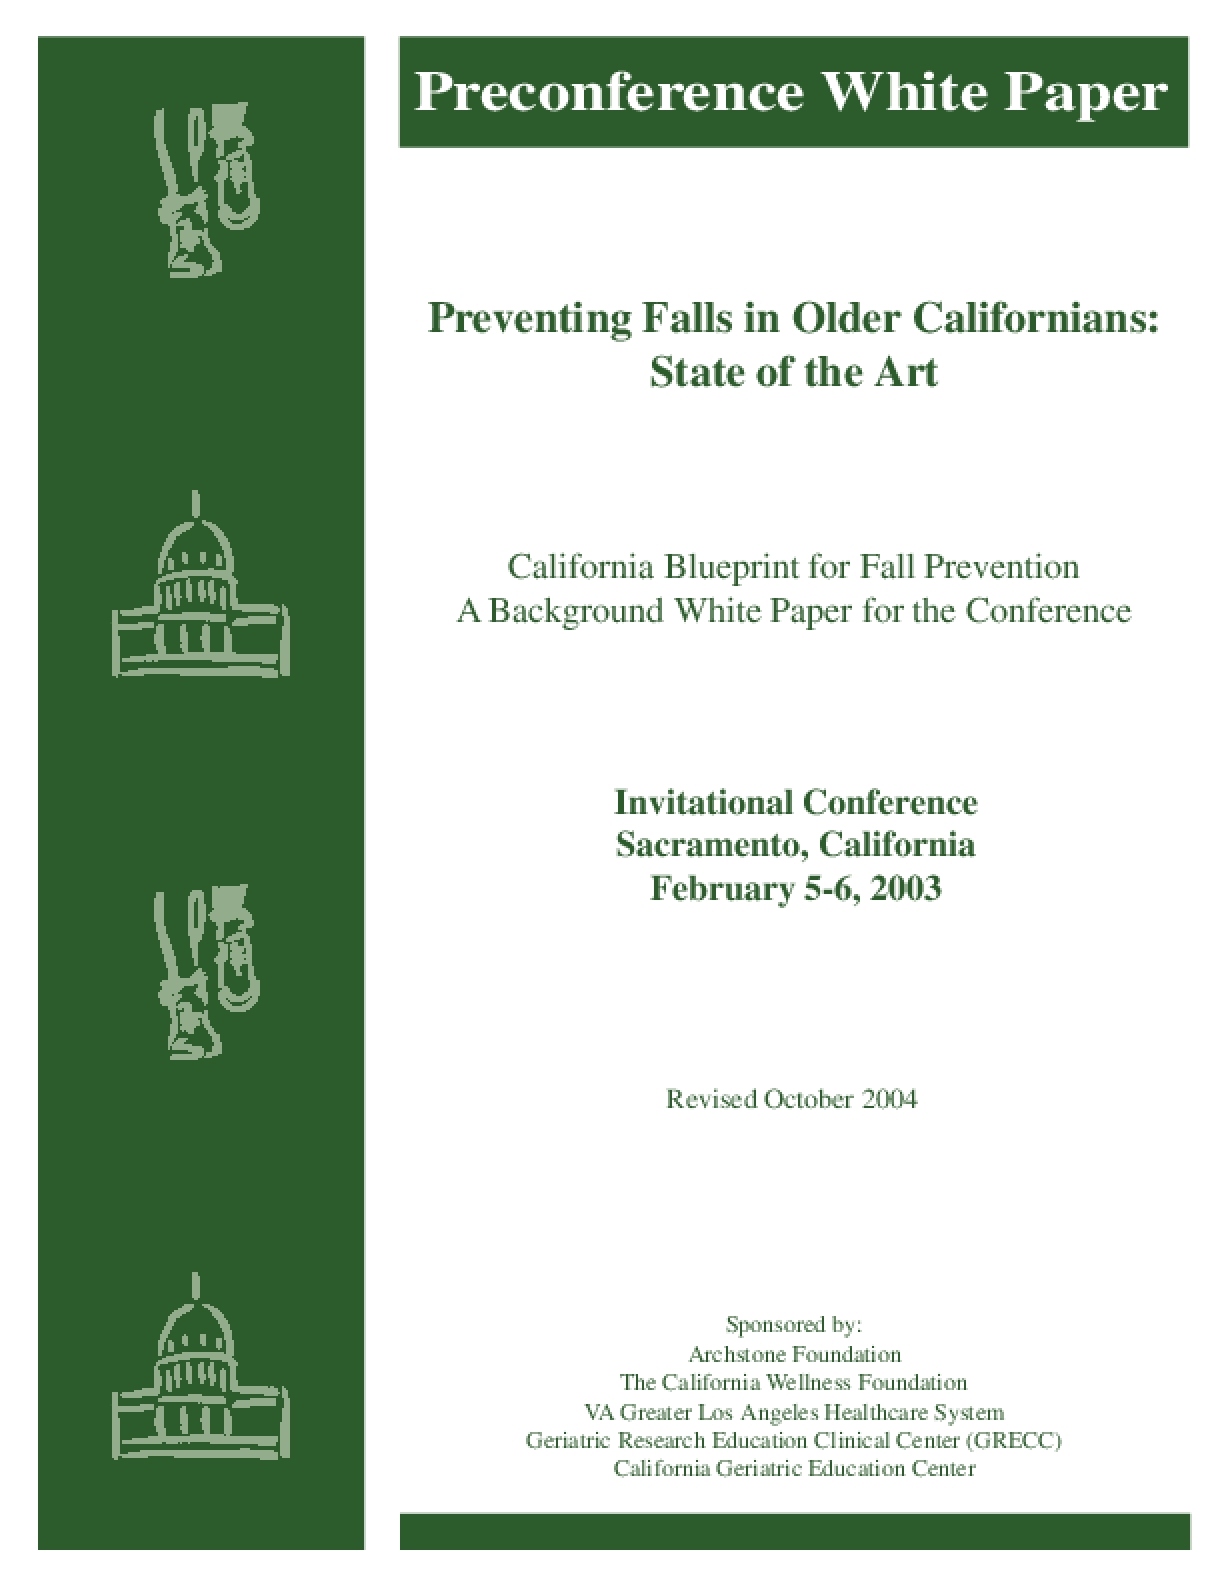 Preventing Falls in Older Californians: State of the Art